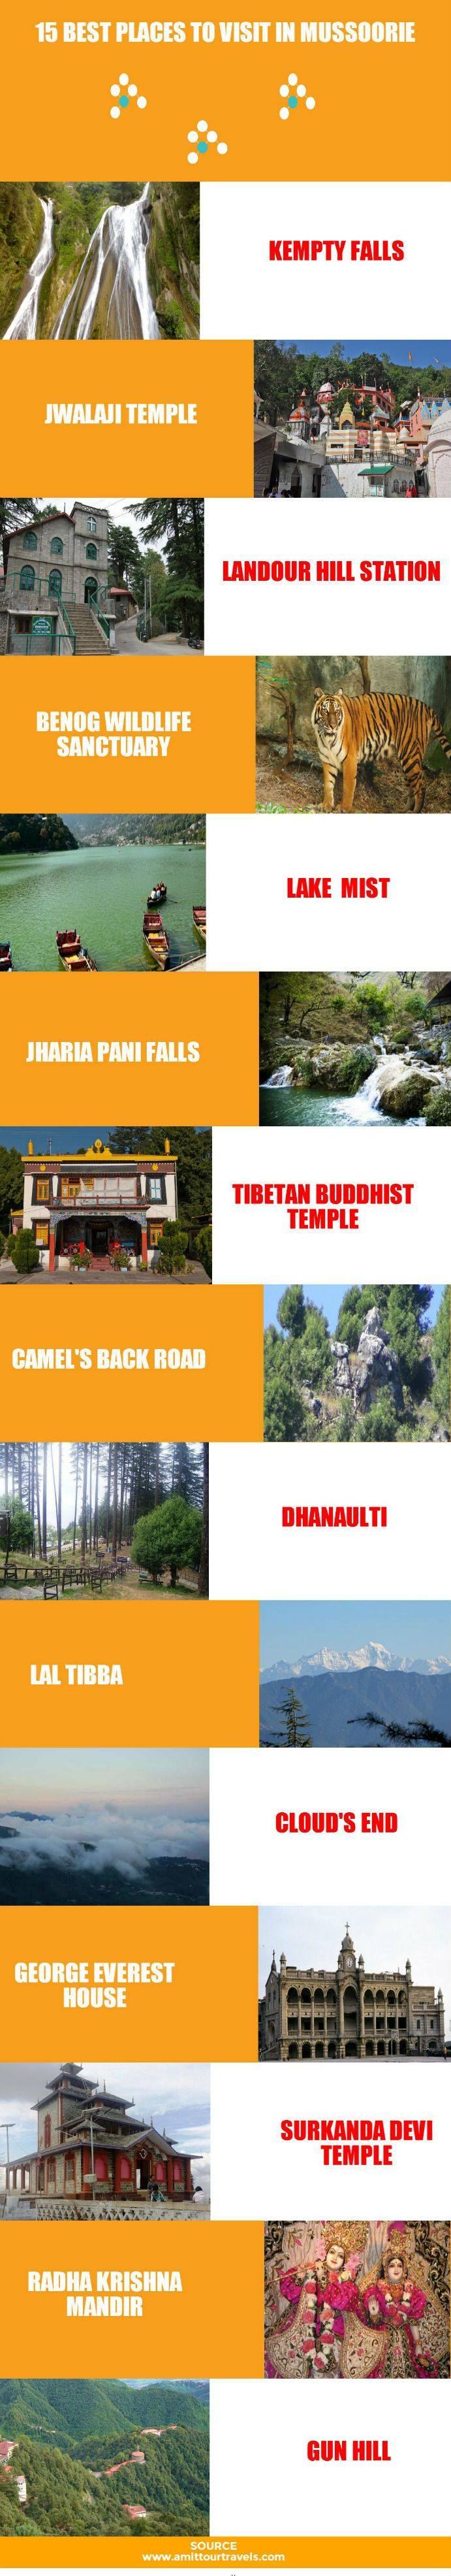 Do you know 15 Best Places to Visit in Mussoorie? #Mussoorie #Travel #India